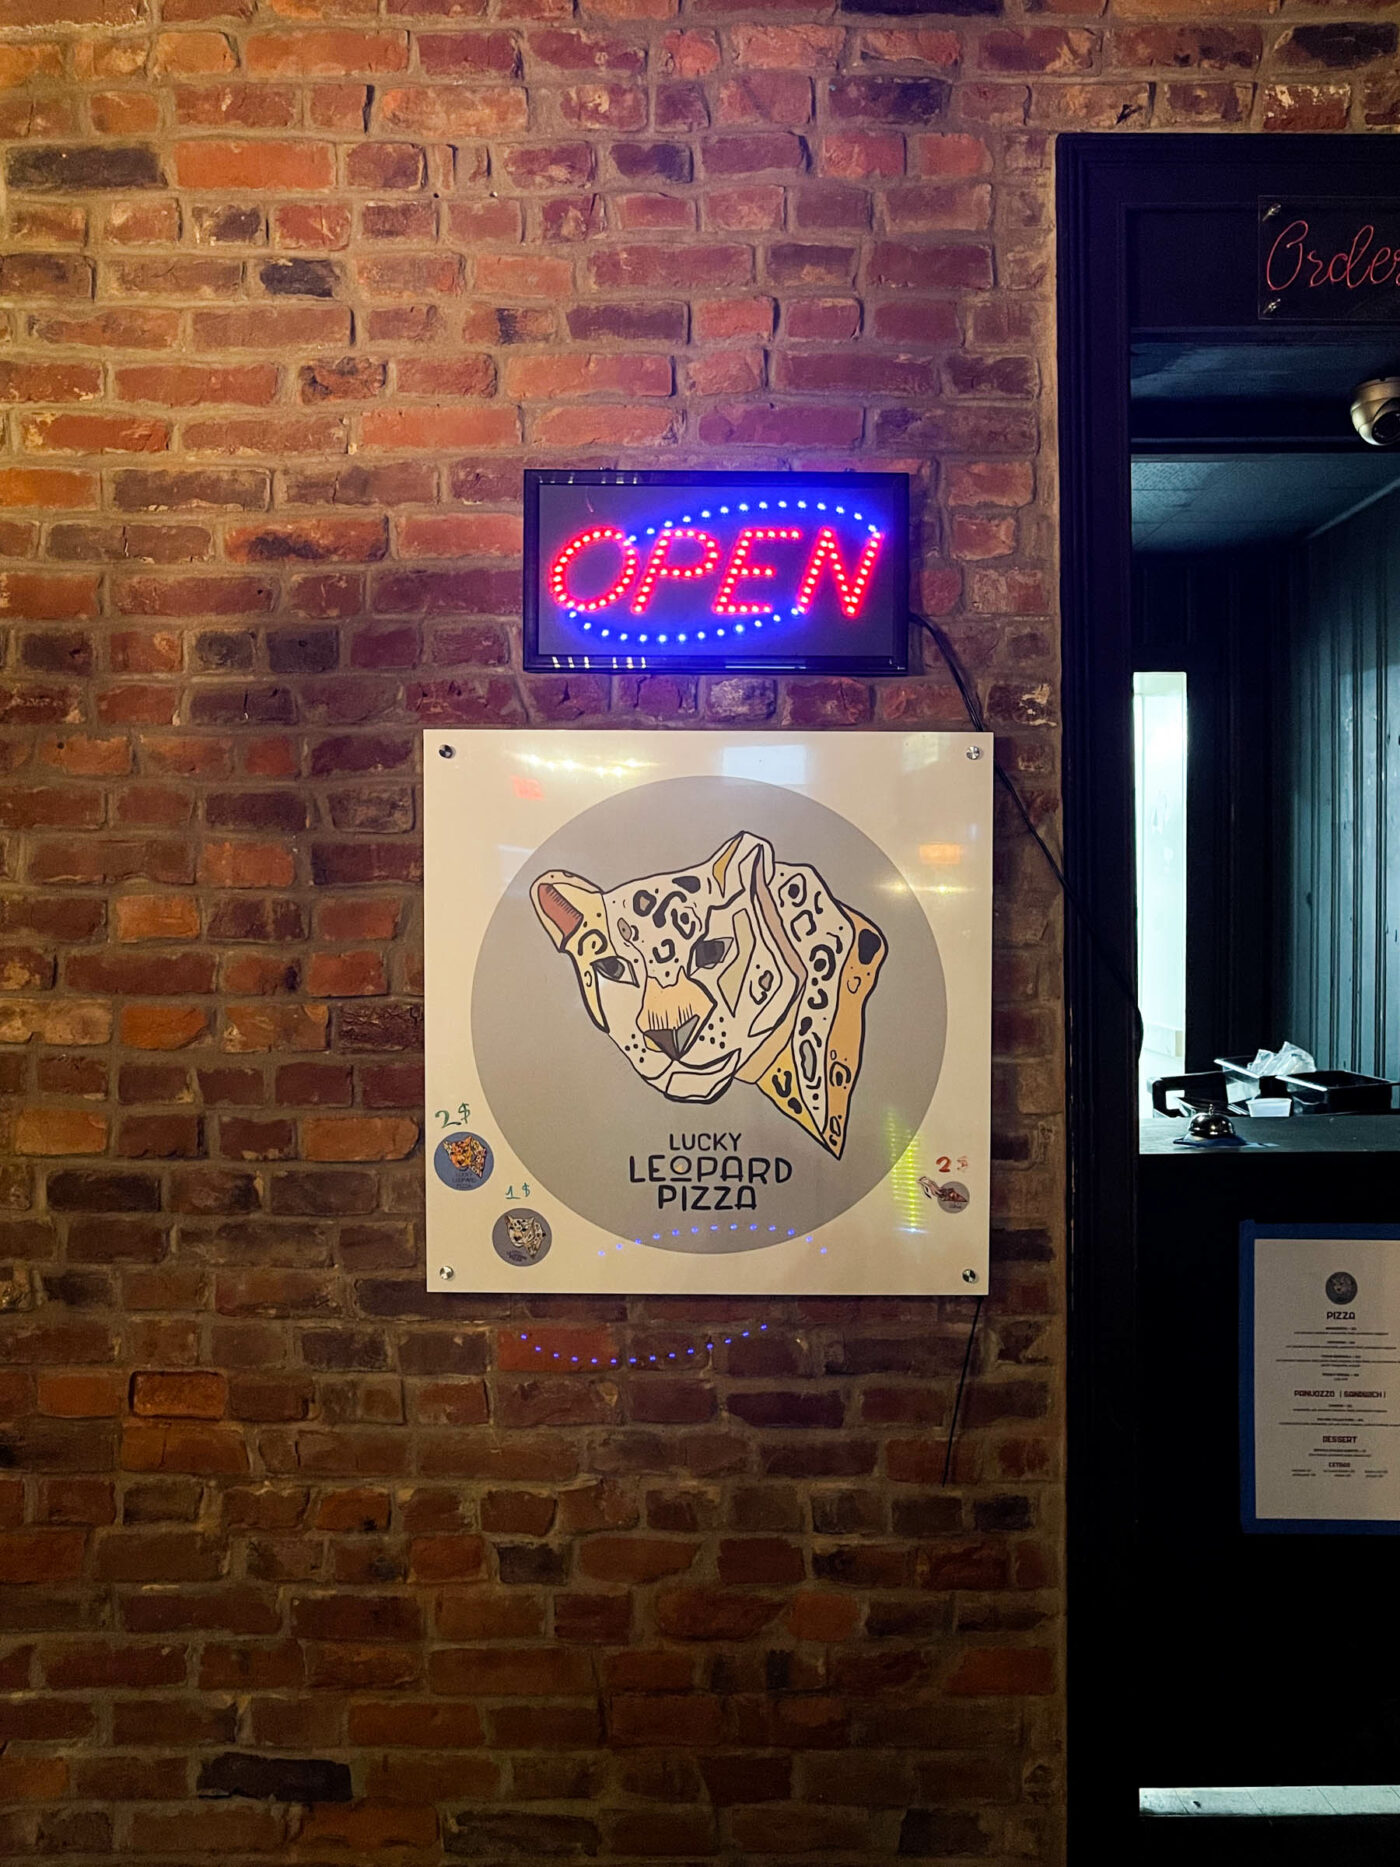 lucky leopard pizza sign